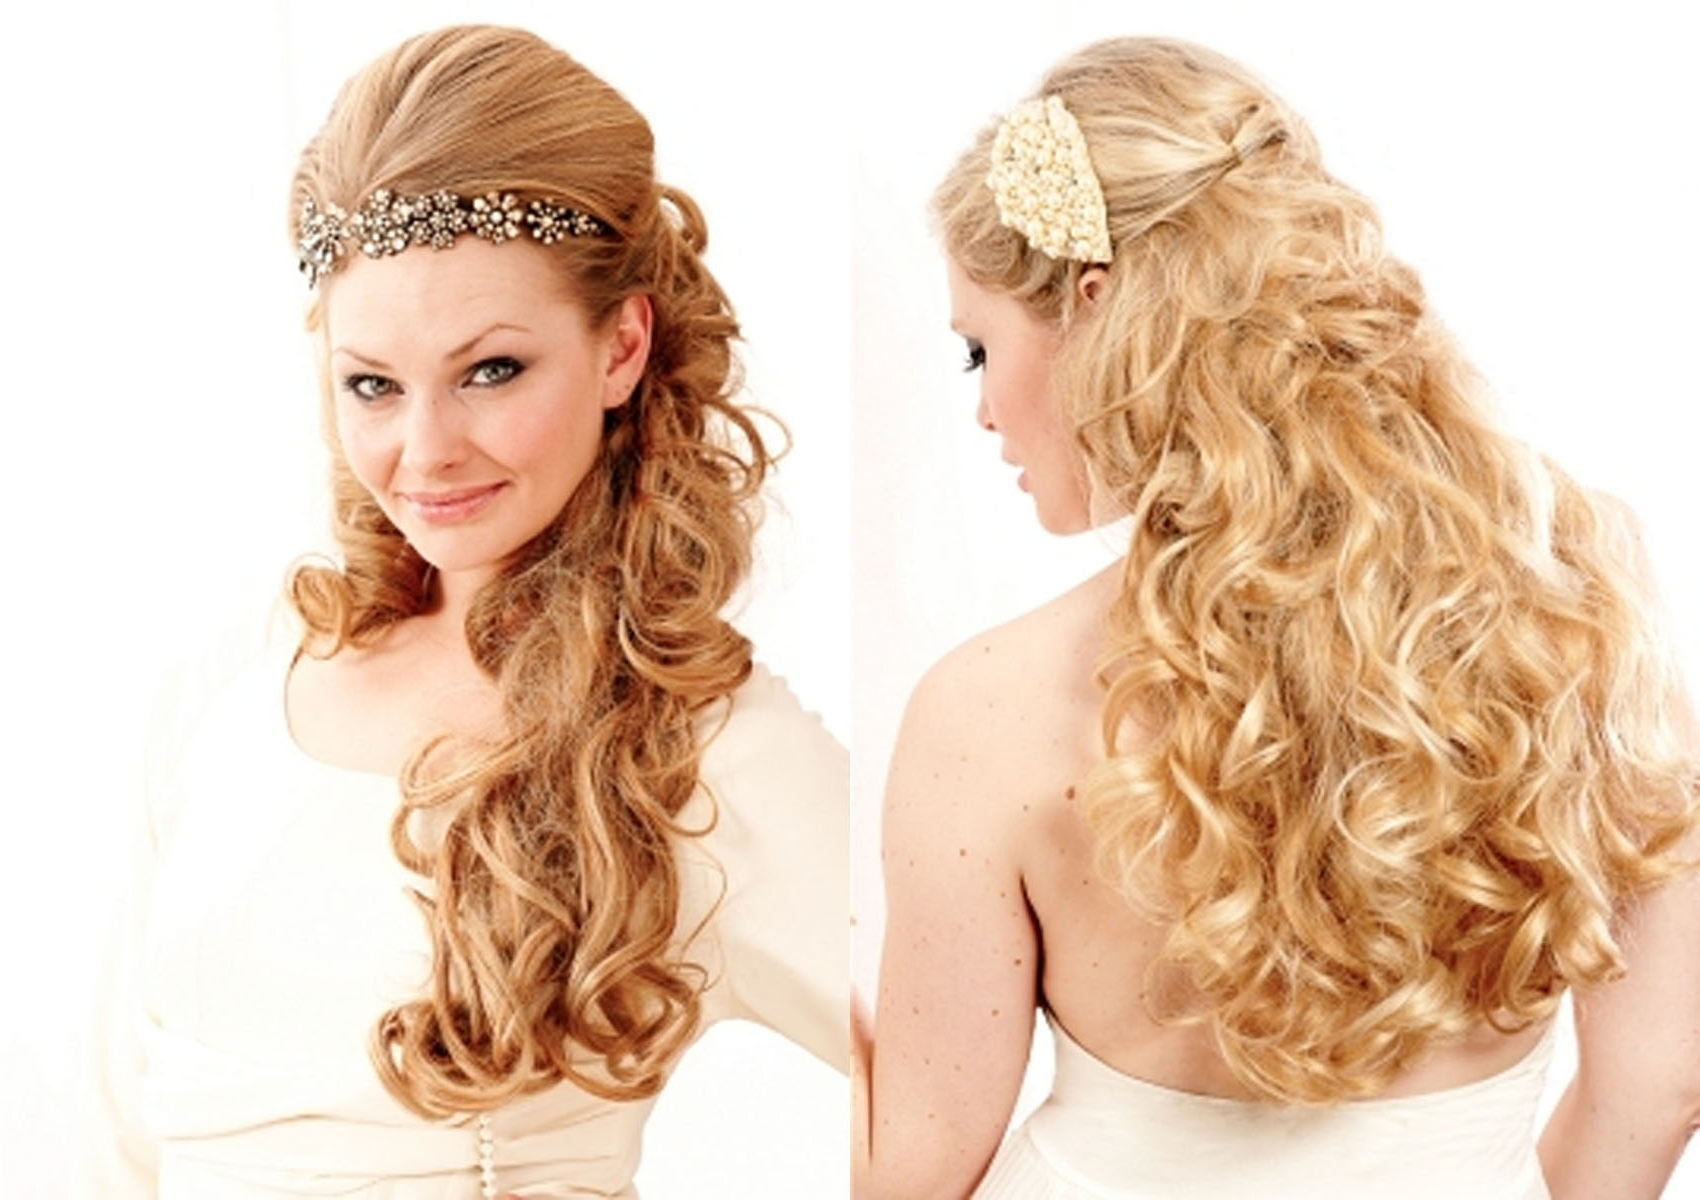 Formal Hairstyles For Long Hair Wedding Trendy | Medium Hair Styles With Regard To Trendy Updo Hairstyles For Long Hair (View 7 of 15)